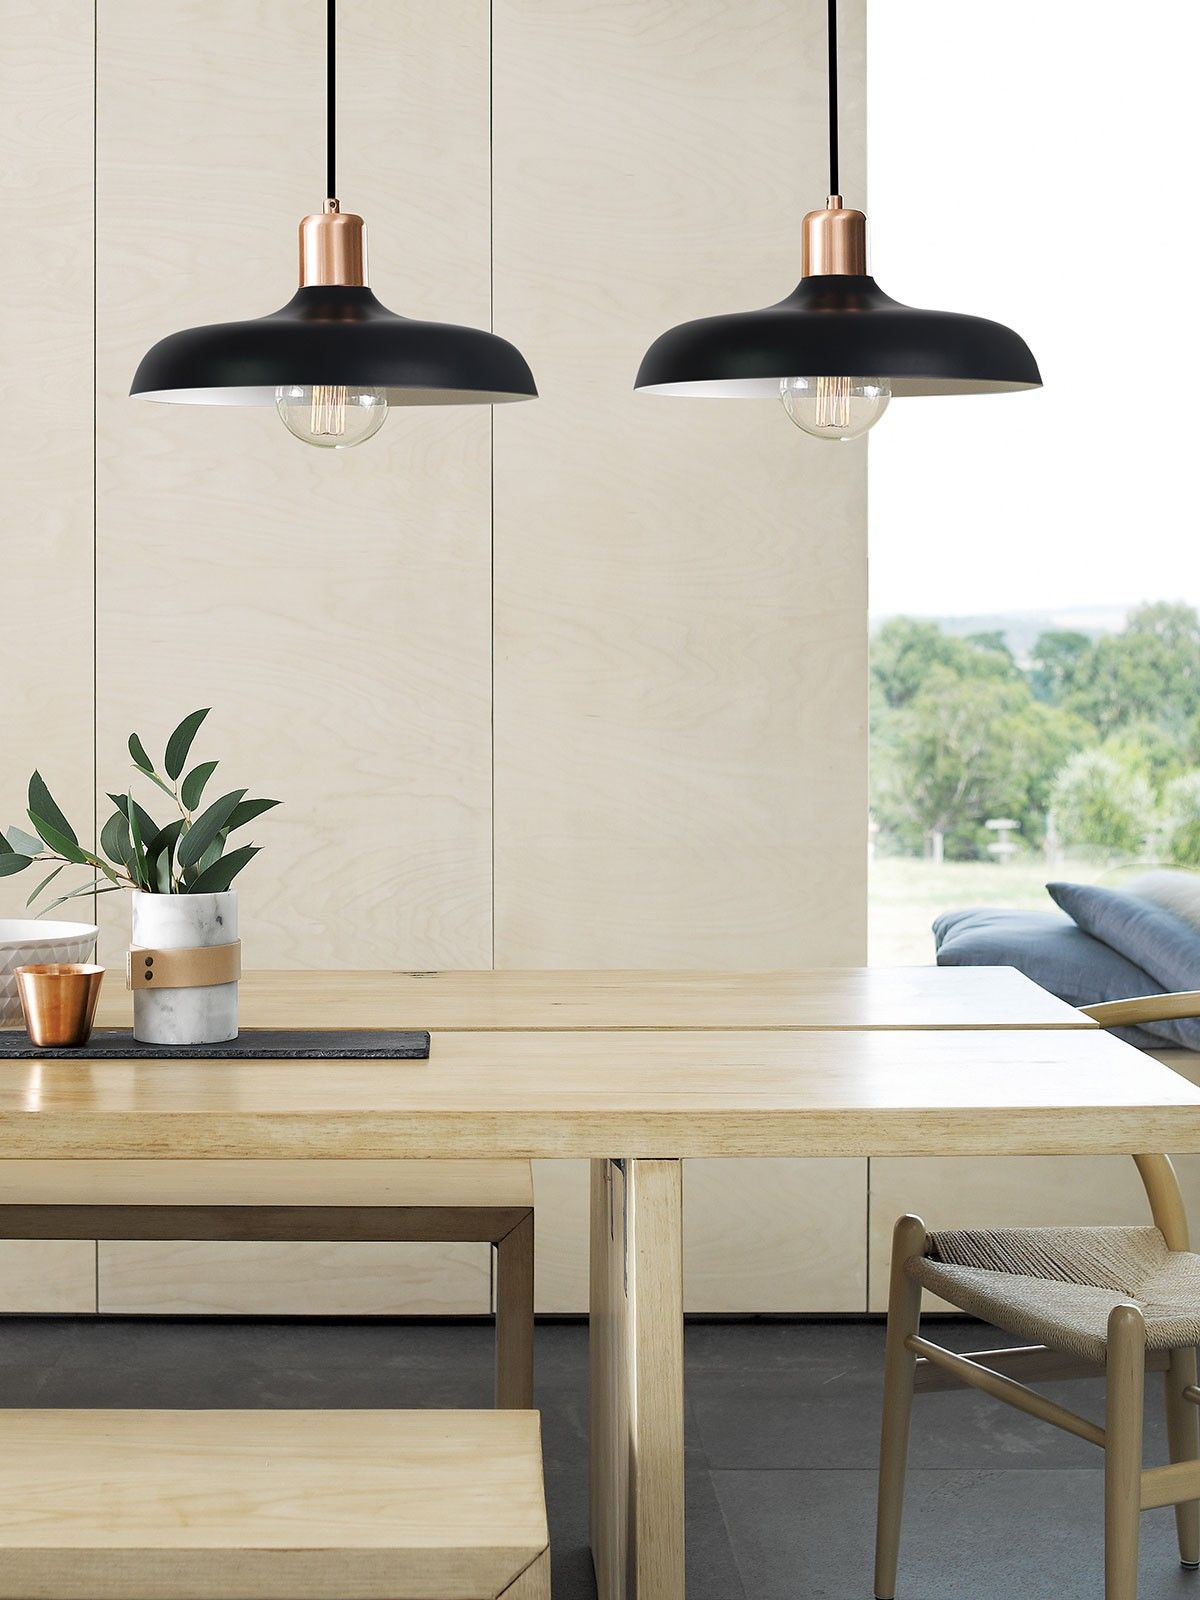 Croft 1 Light Pendant In Brushed Copper/black | Dining Room Pertaining To Guro 1 Light Cone Pendants (View 17 of 30)